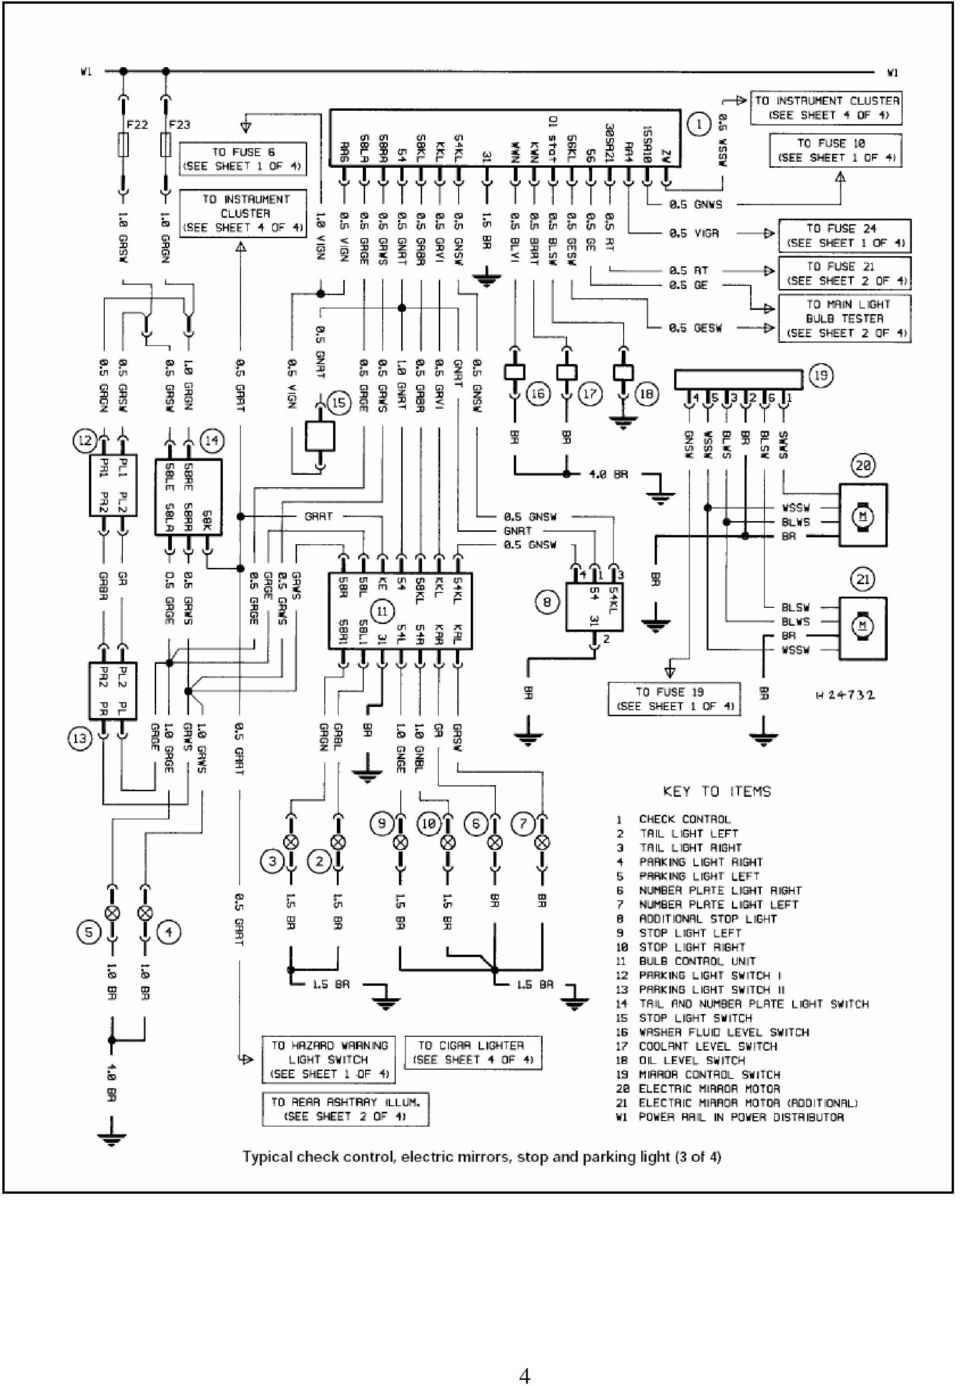 Colour Codes Diagrams Index Pdf Thread A C Not Working Coolant Module Pinout Diagram 1999 20 Sri 4